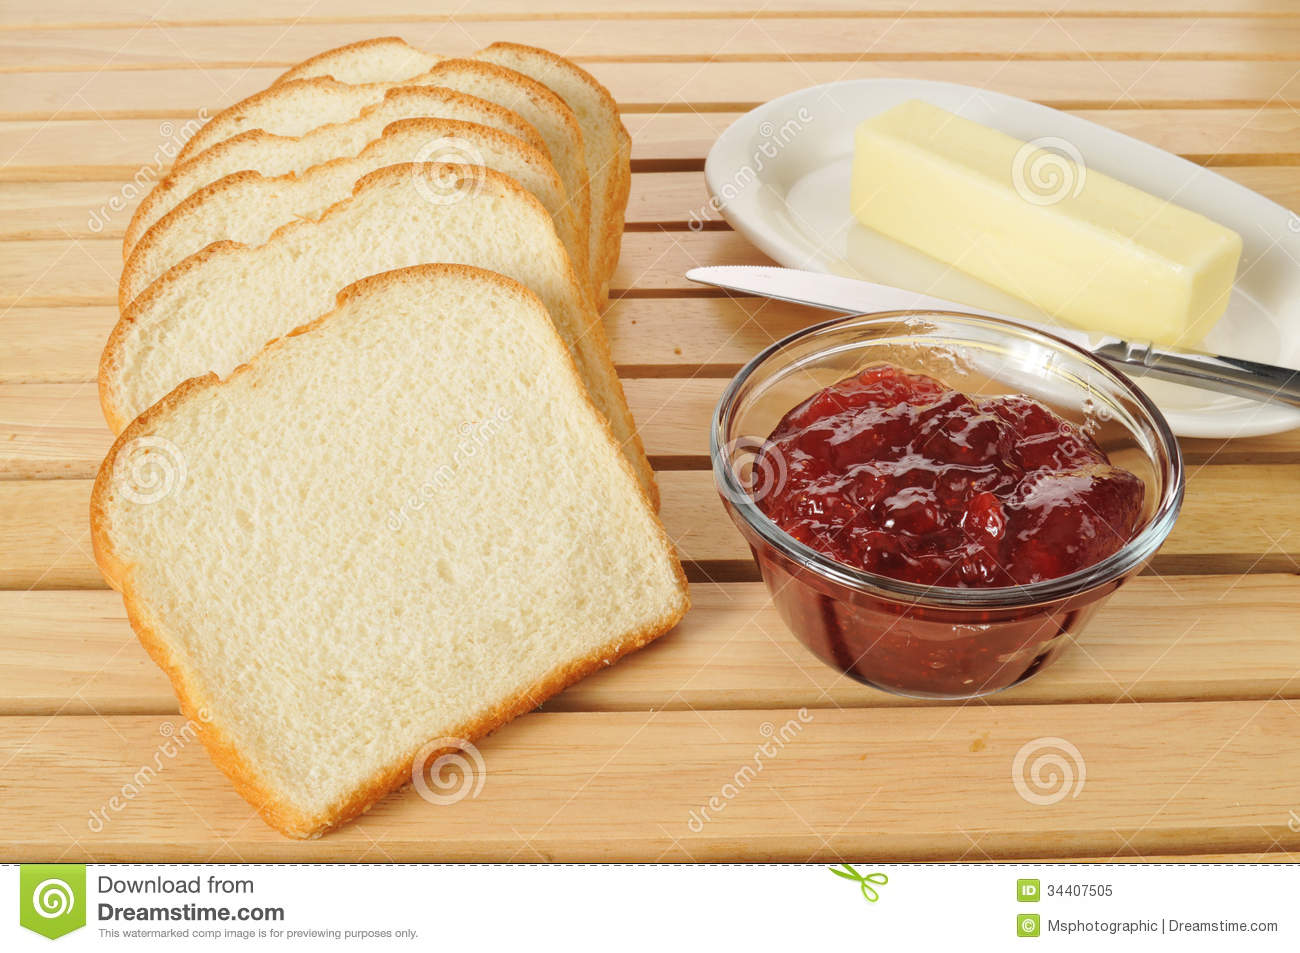 Sliced Bread Royalty Free Stock Photo - Image: 34407505